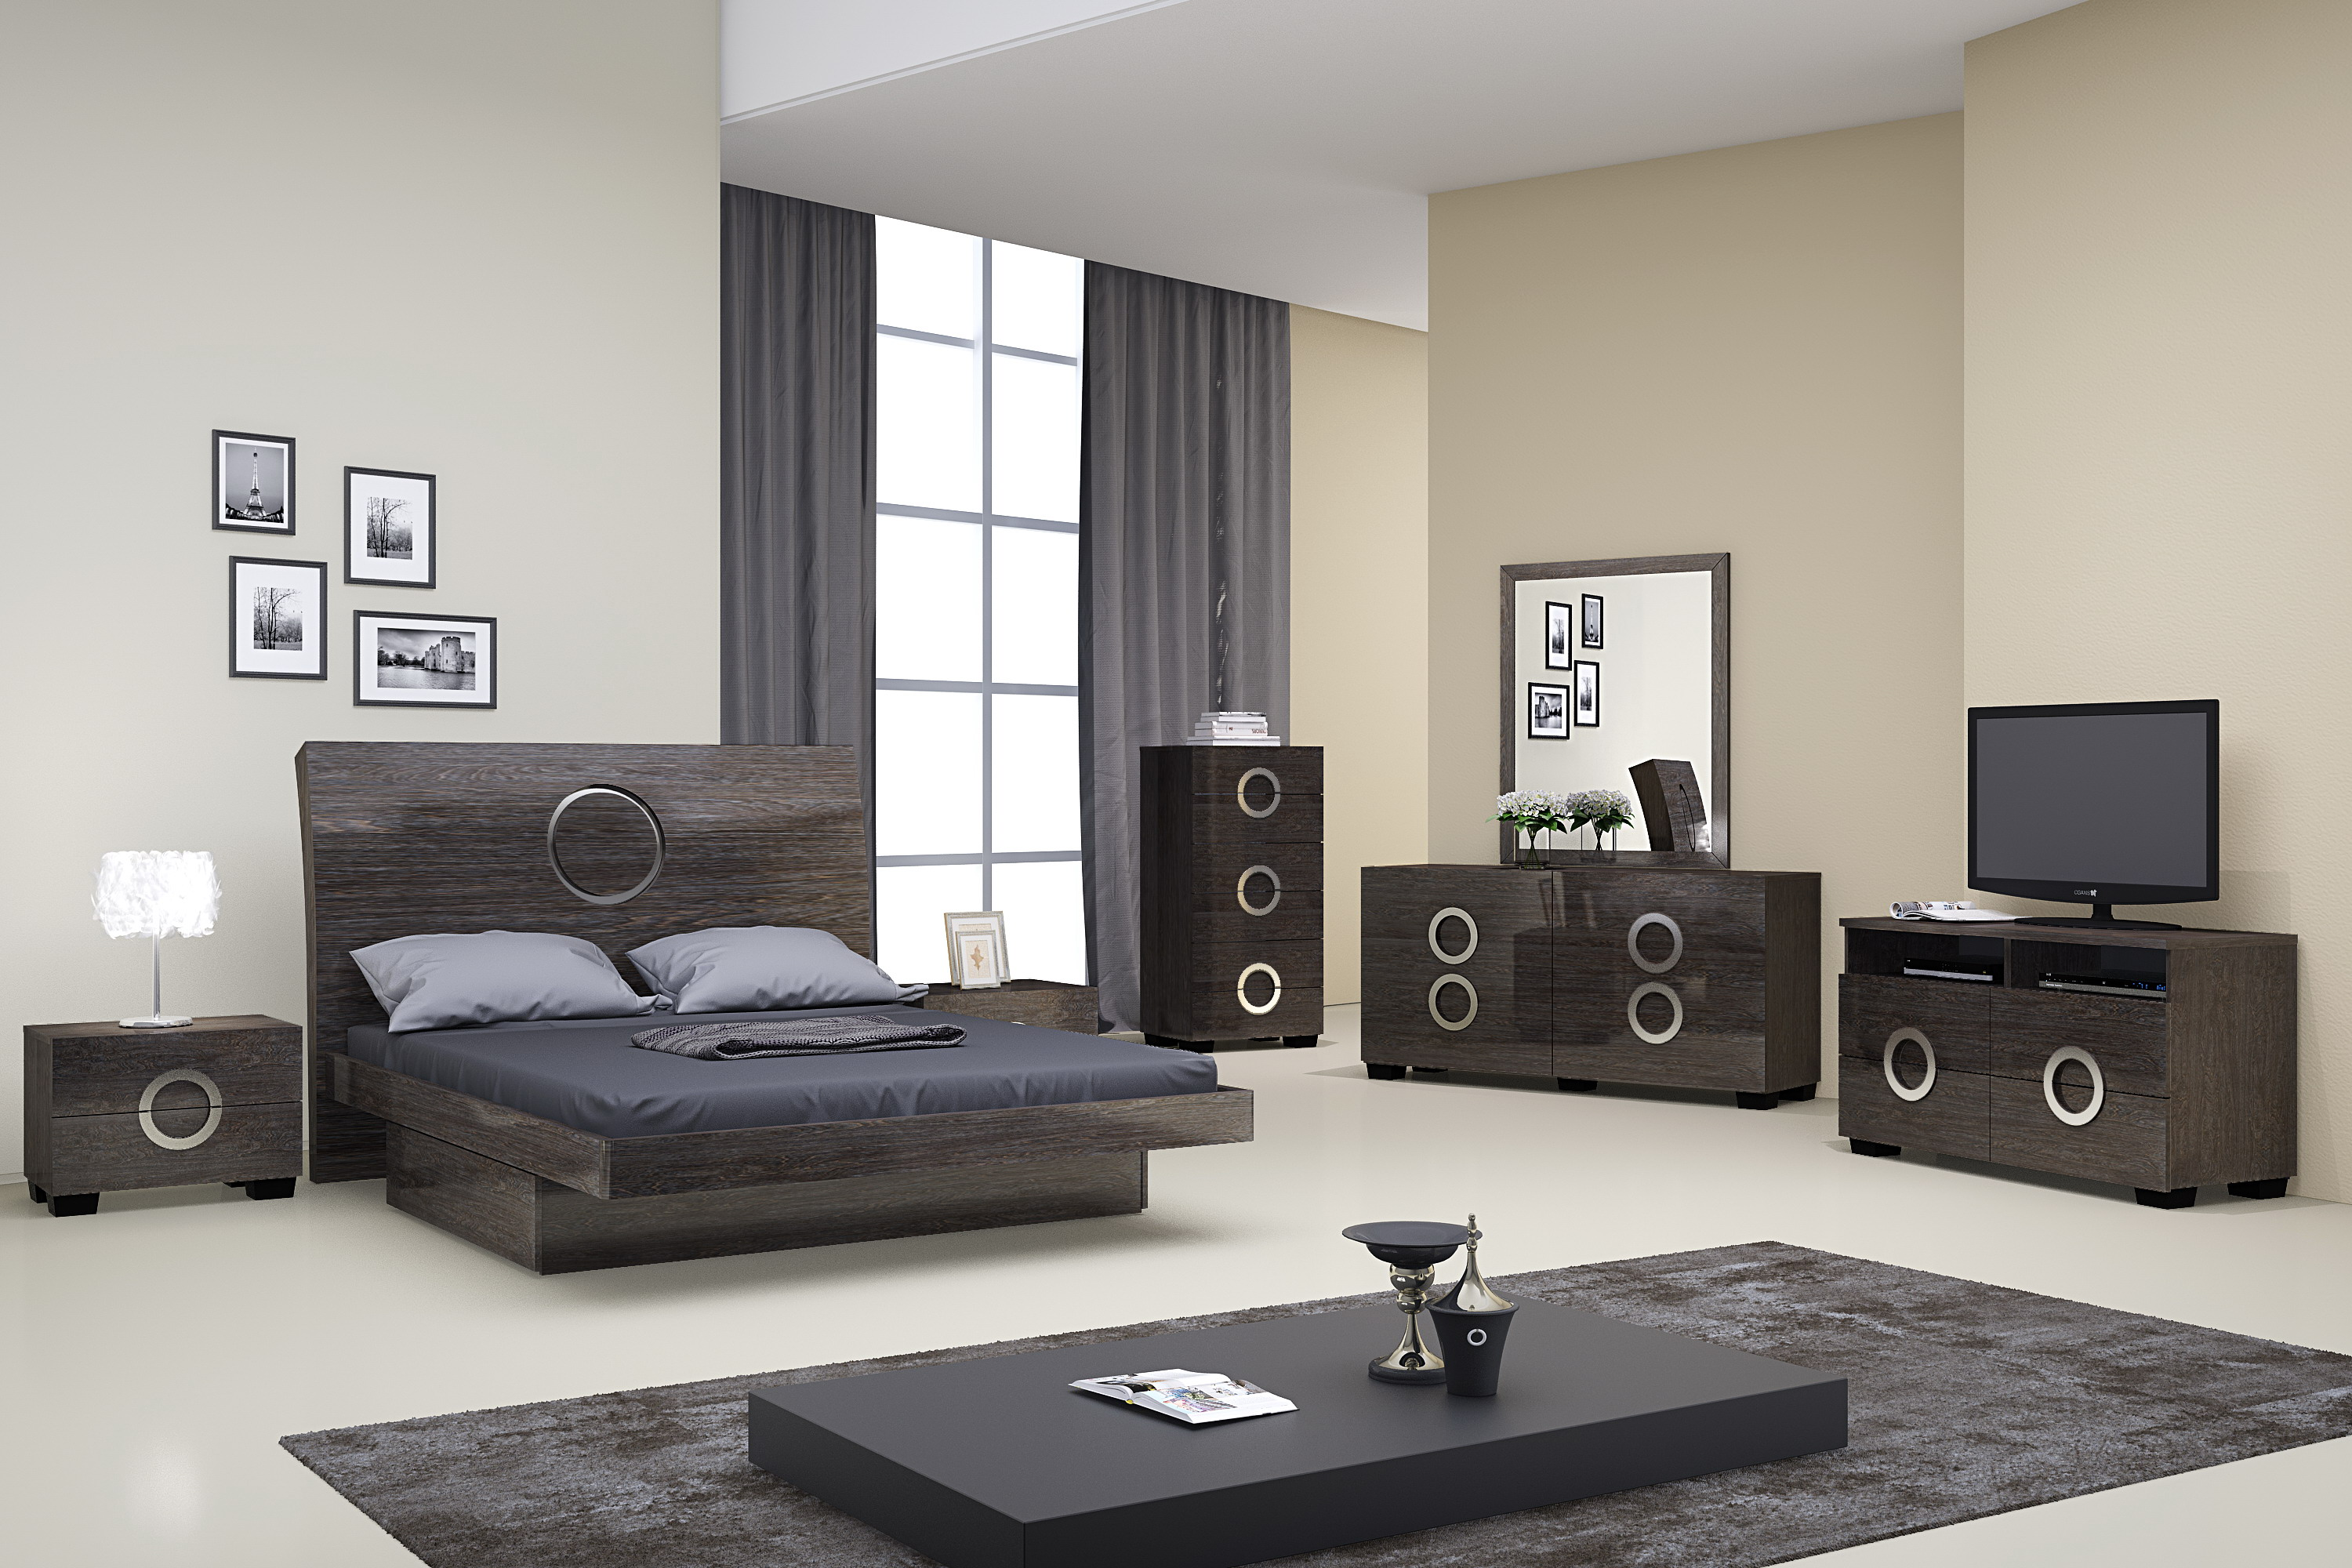 Monte Carlo Grey Lacquer Bedroom Set Las Vegas Furniture Store Modern Home Furniture